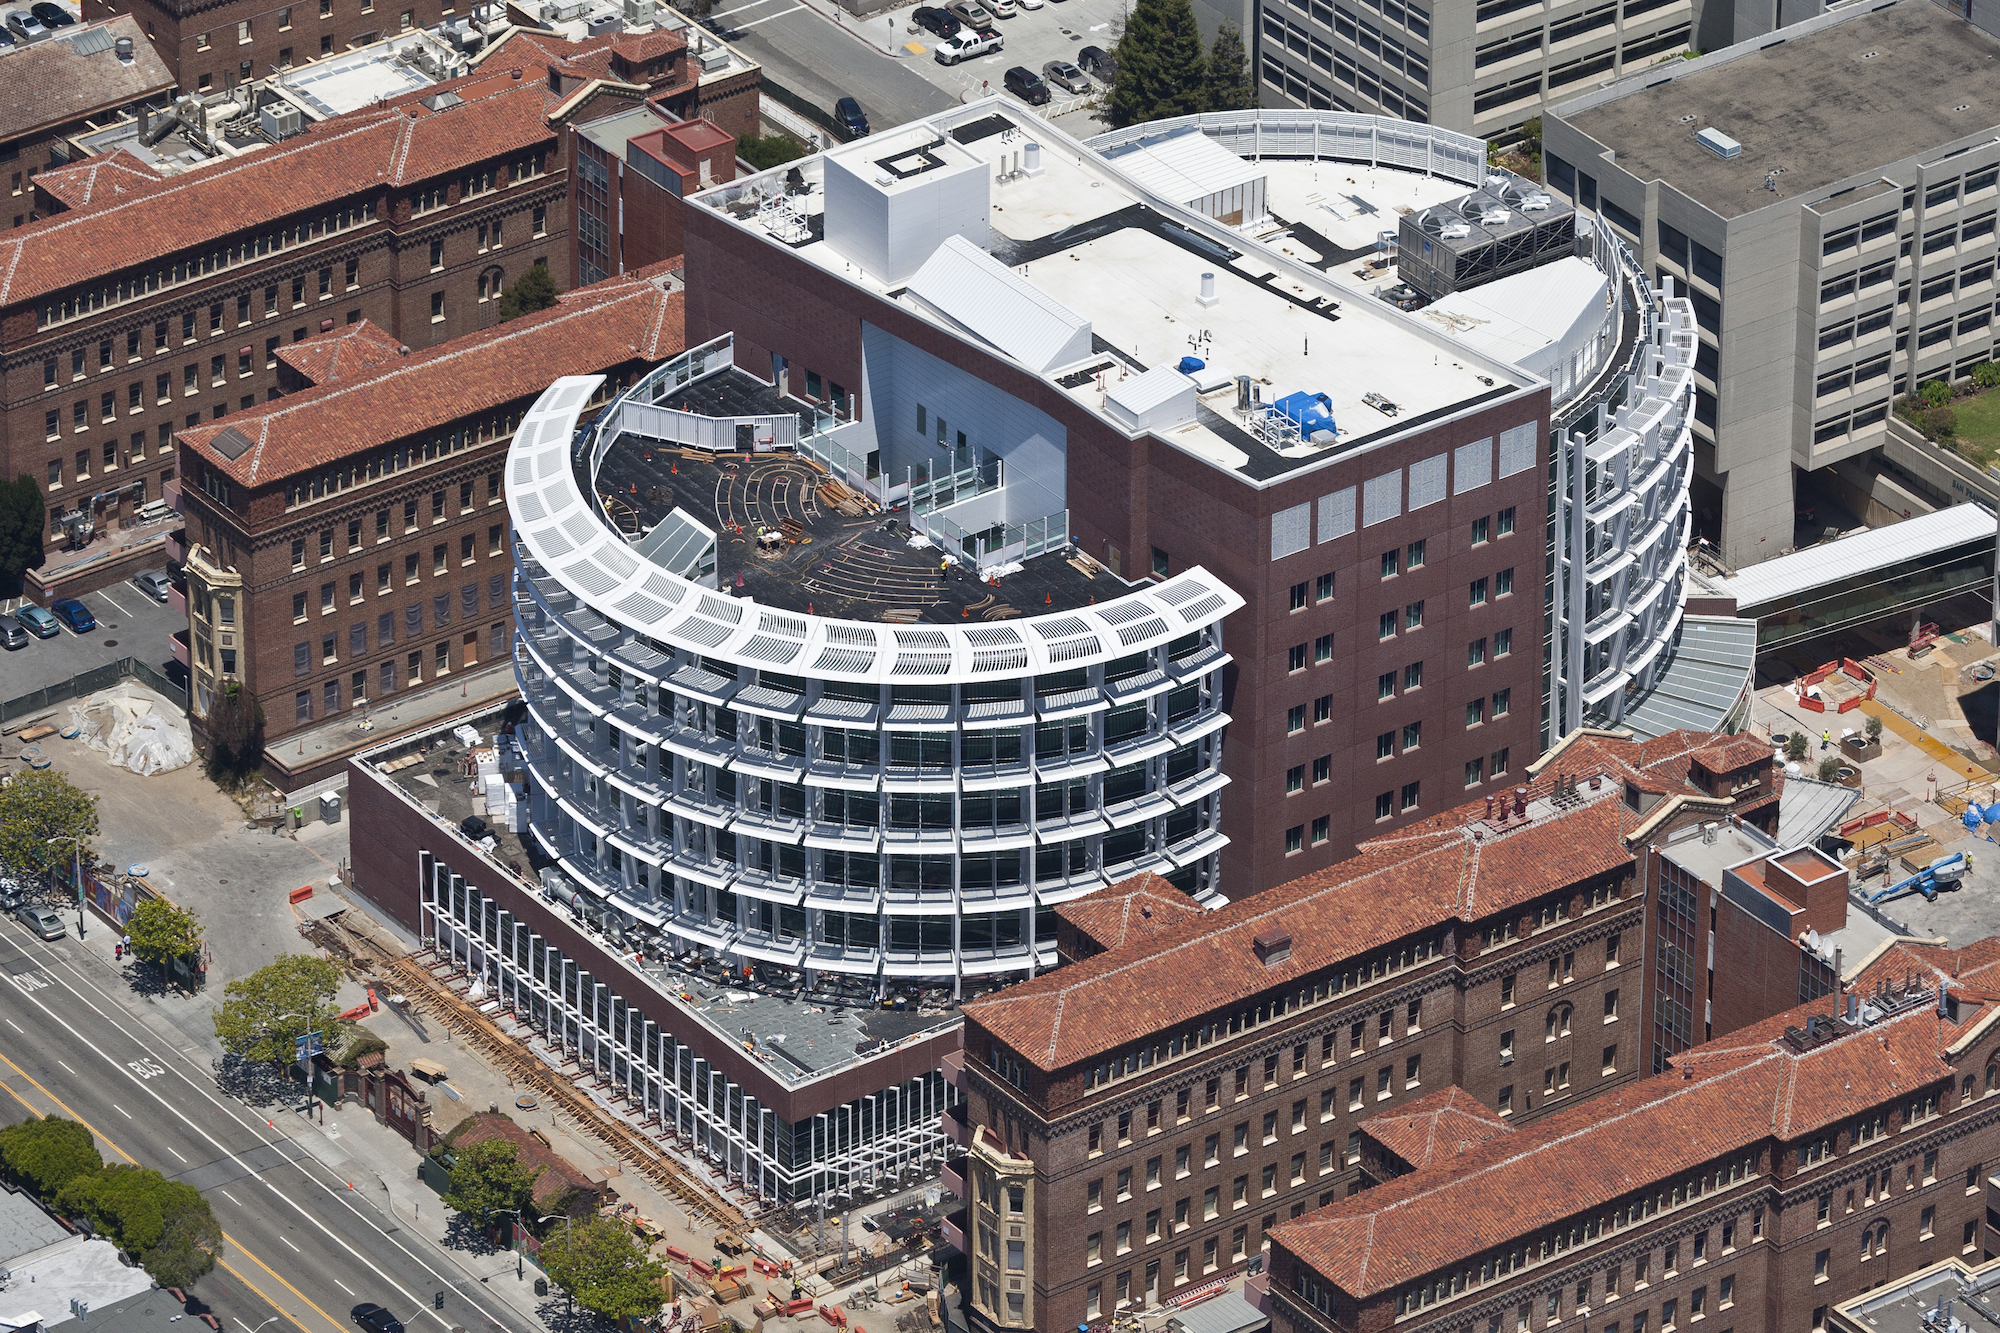 New Level One Trauma Center at Zuckerberg San Francisco General Hospital